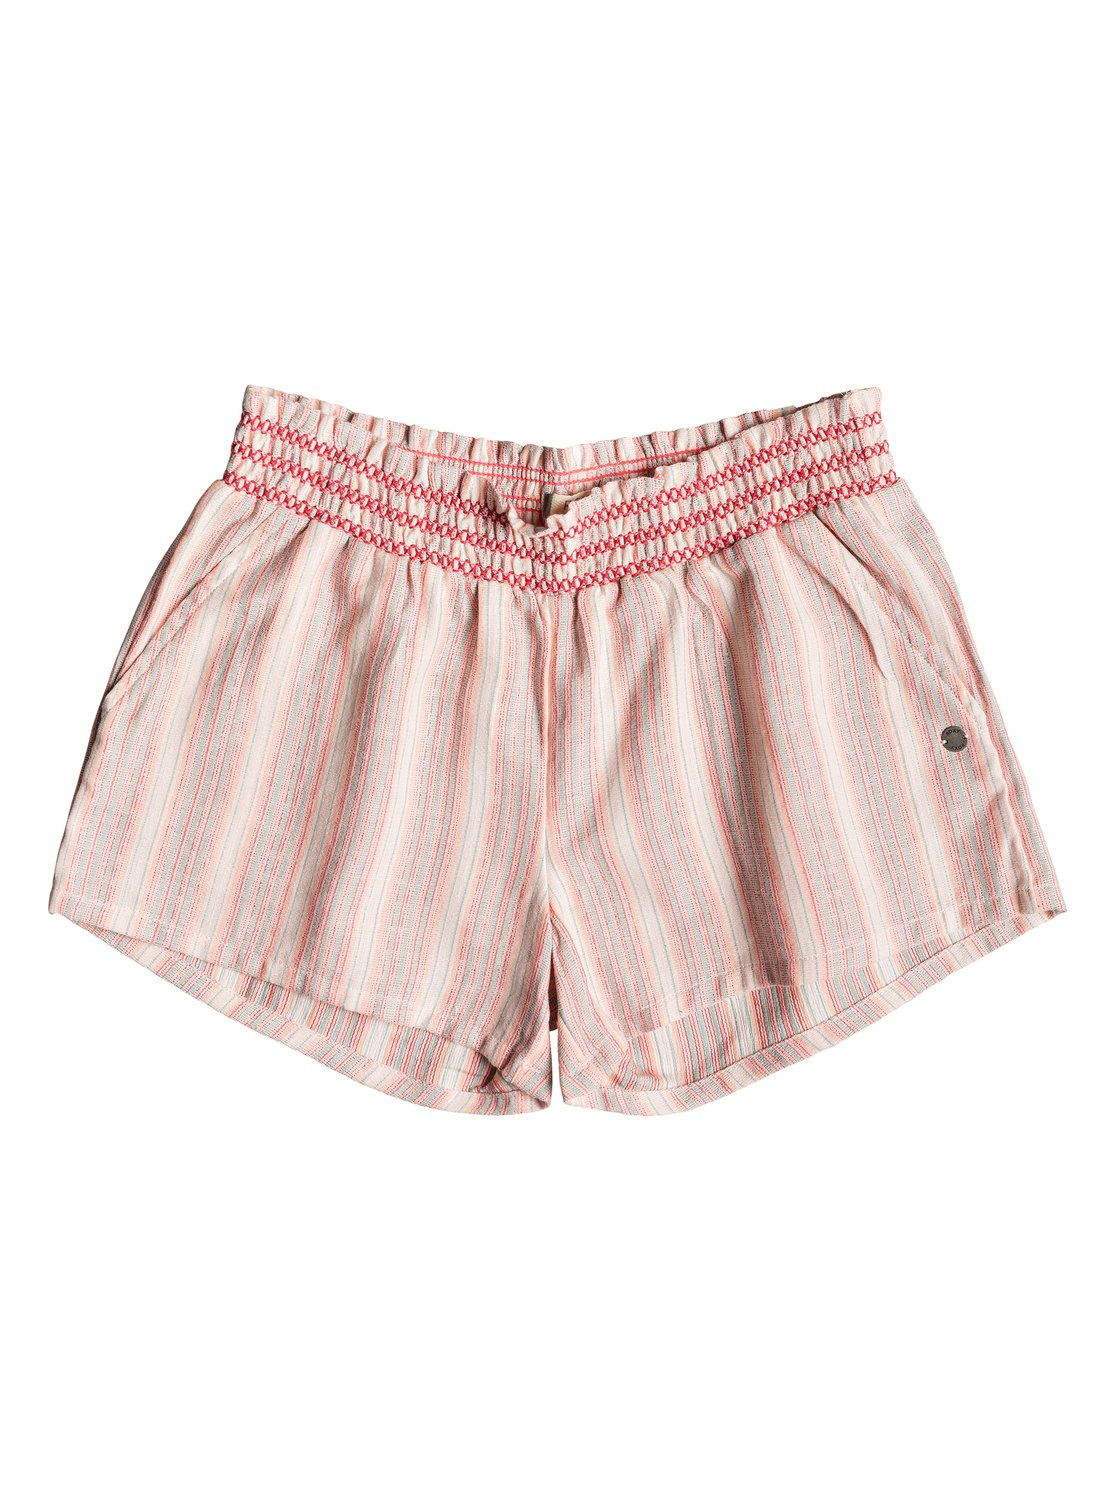 b6c4160b28cb3 0 Girl's 7-14 Dancing In The Sun Beach Shorts Pink ERGNS03036 Roxy